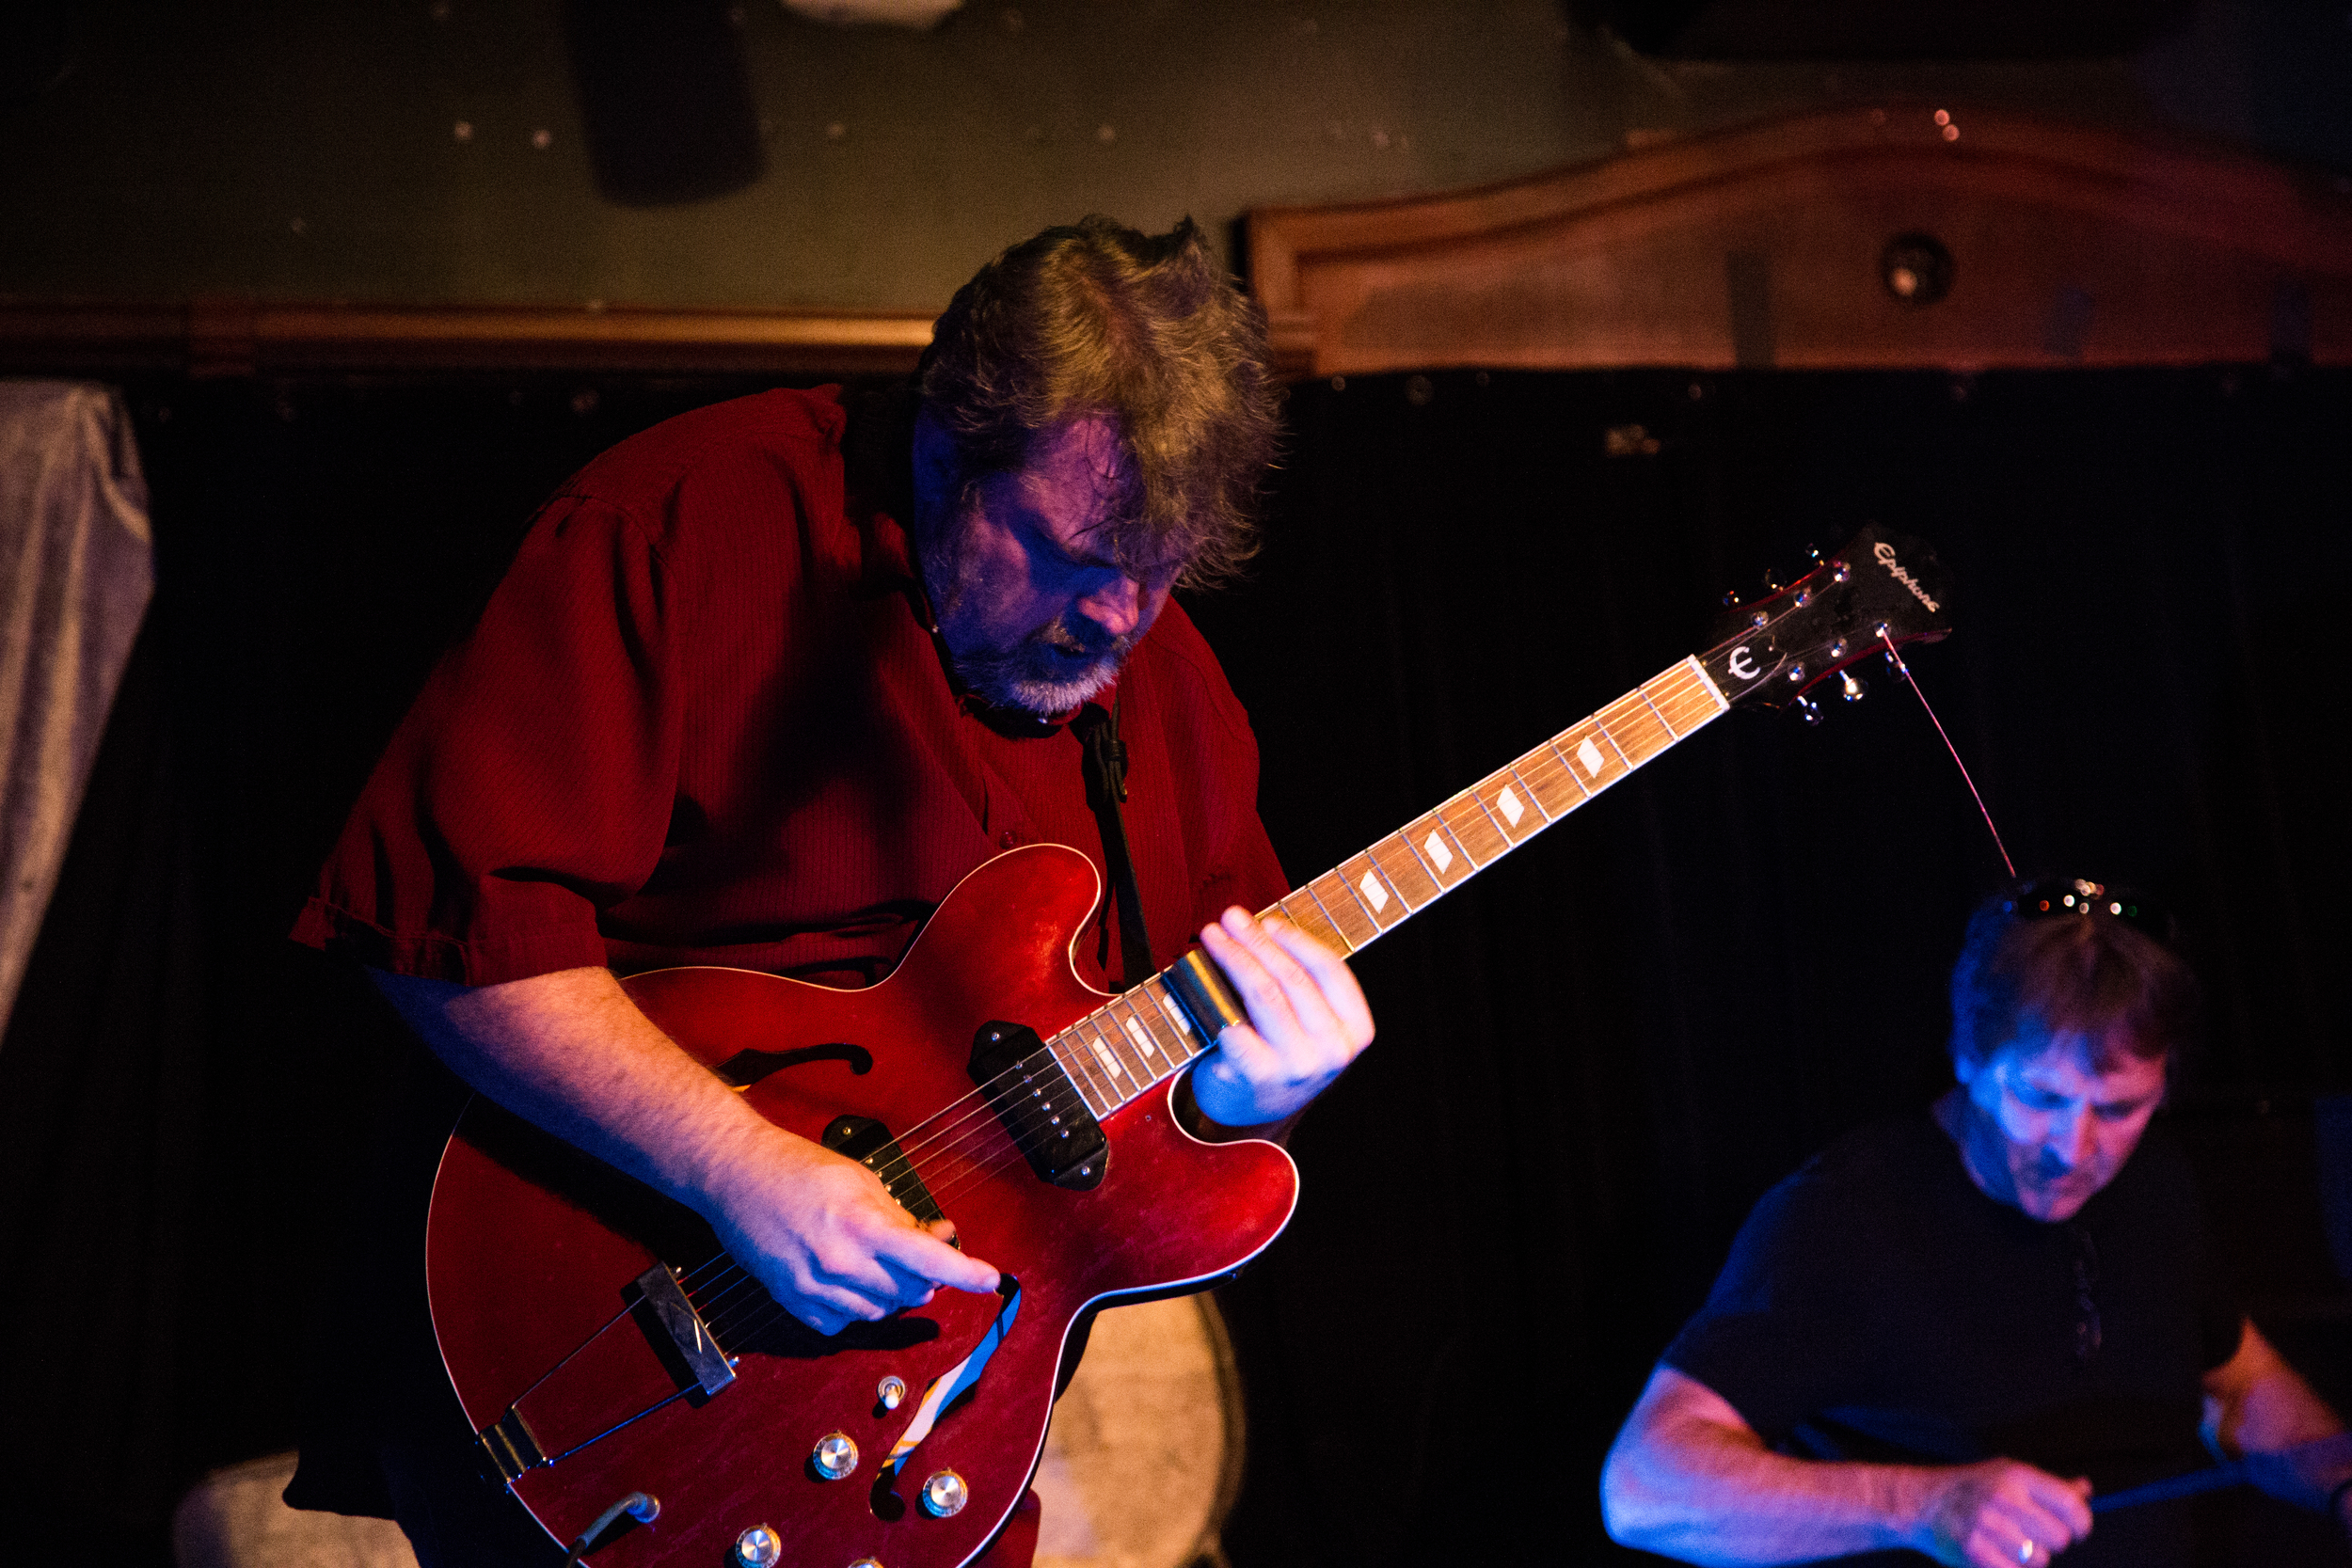 Blackfox - 7-25-2014 @ Smith's Old Bar-18.jpg